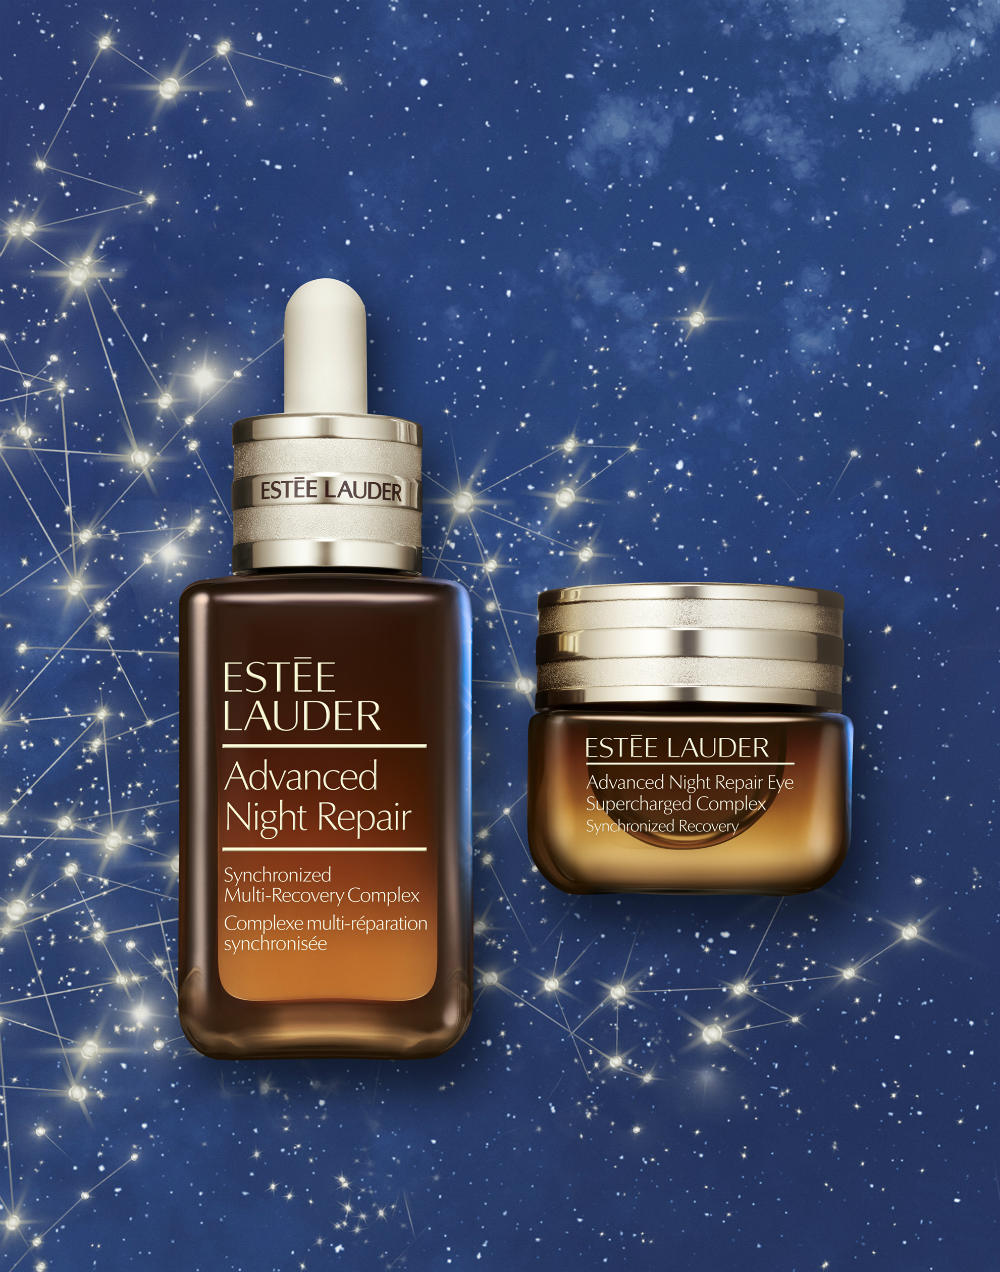 ANR Face Serum and Eye Supercharged Complex Set 3